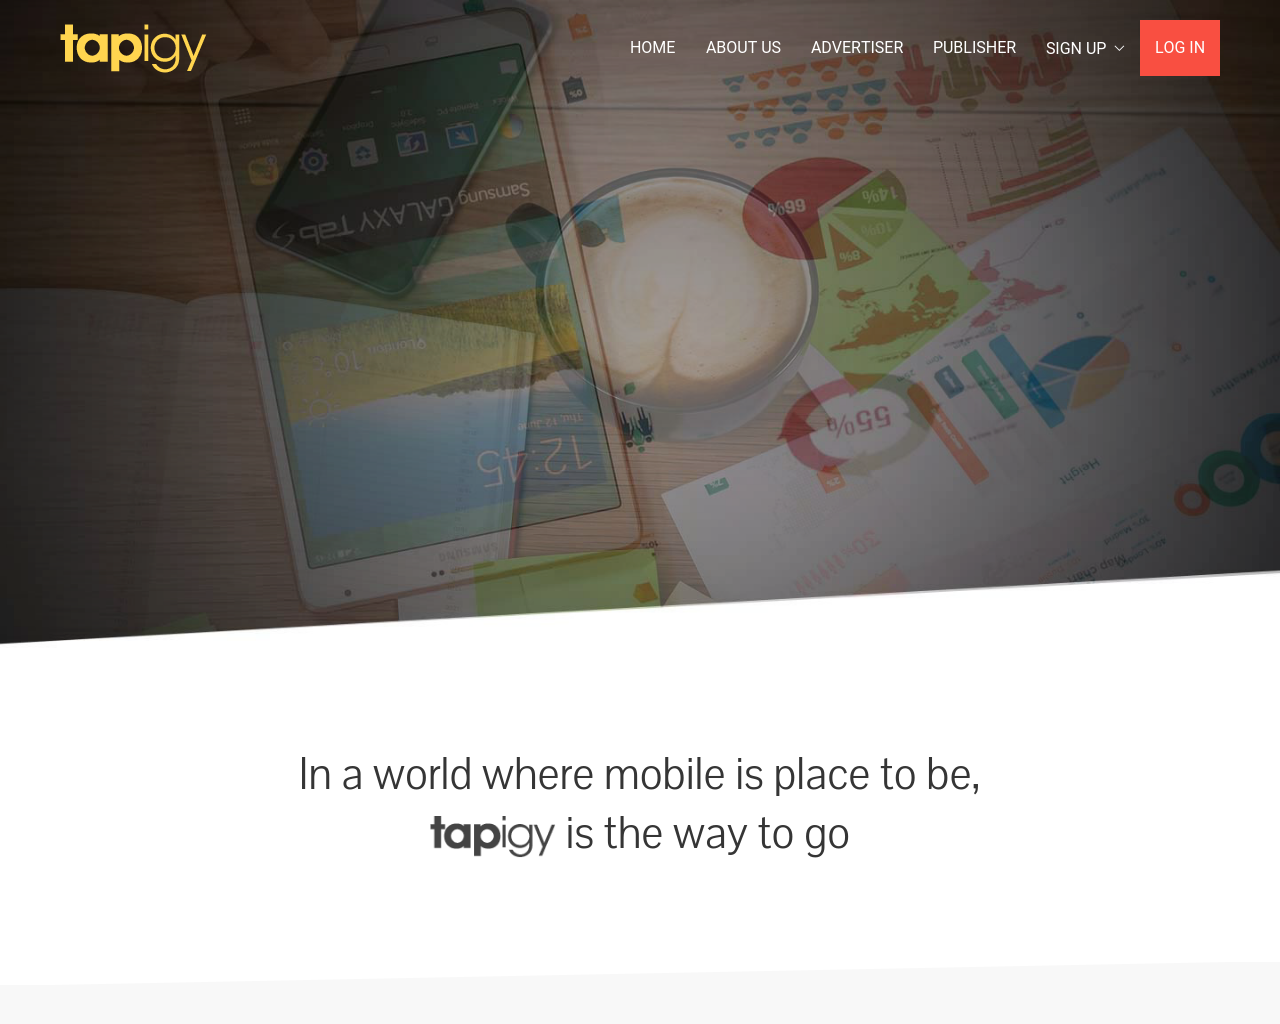 Tapigy-Advertising-Reviews-Pricing